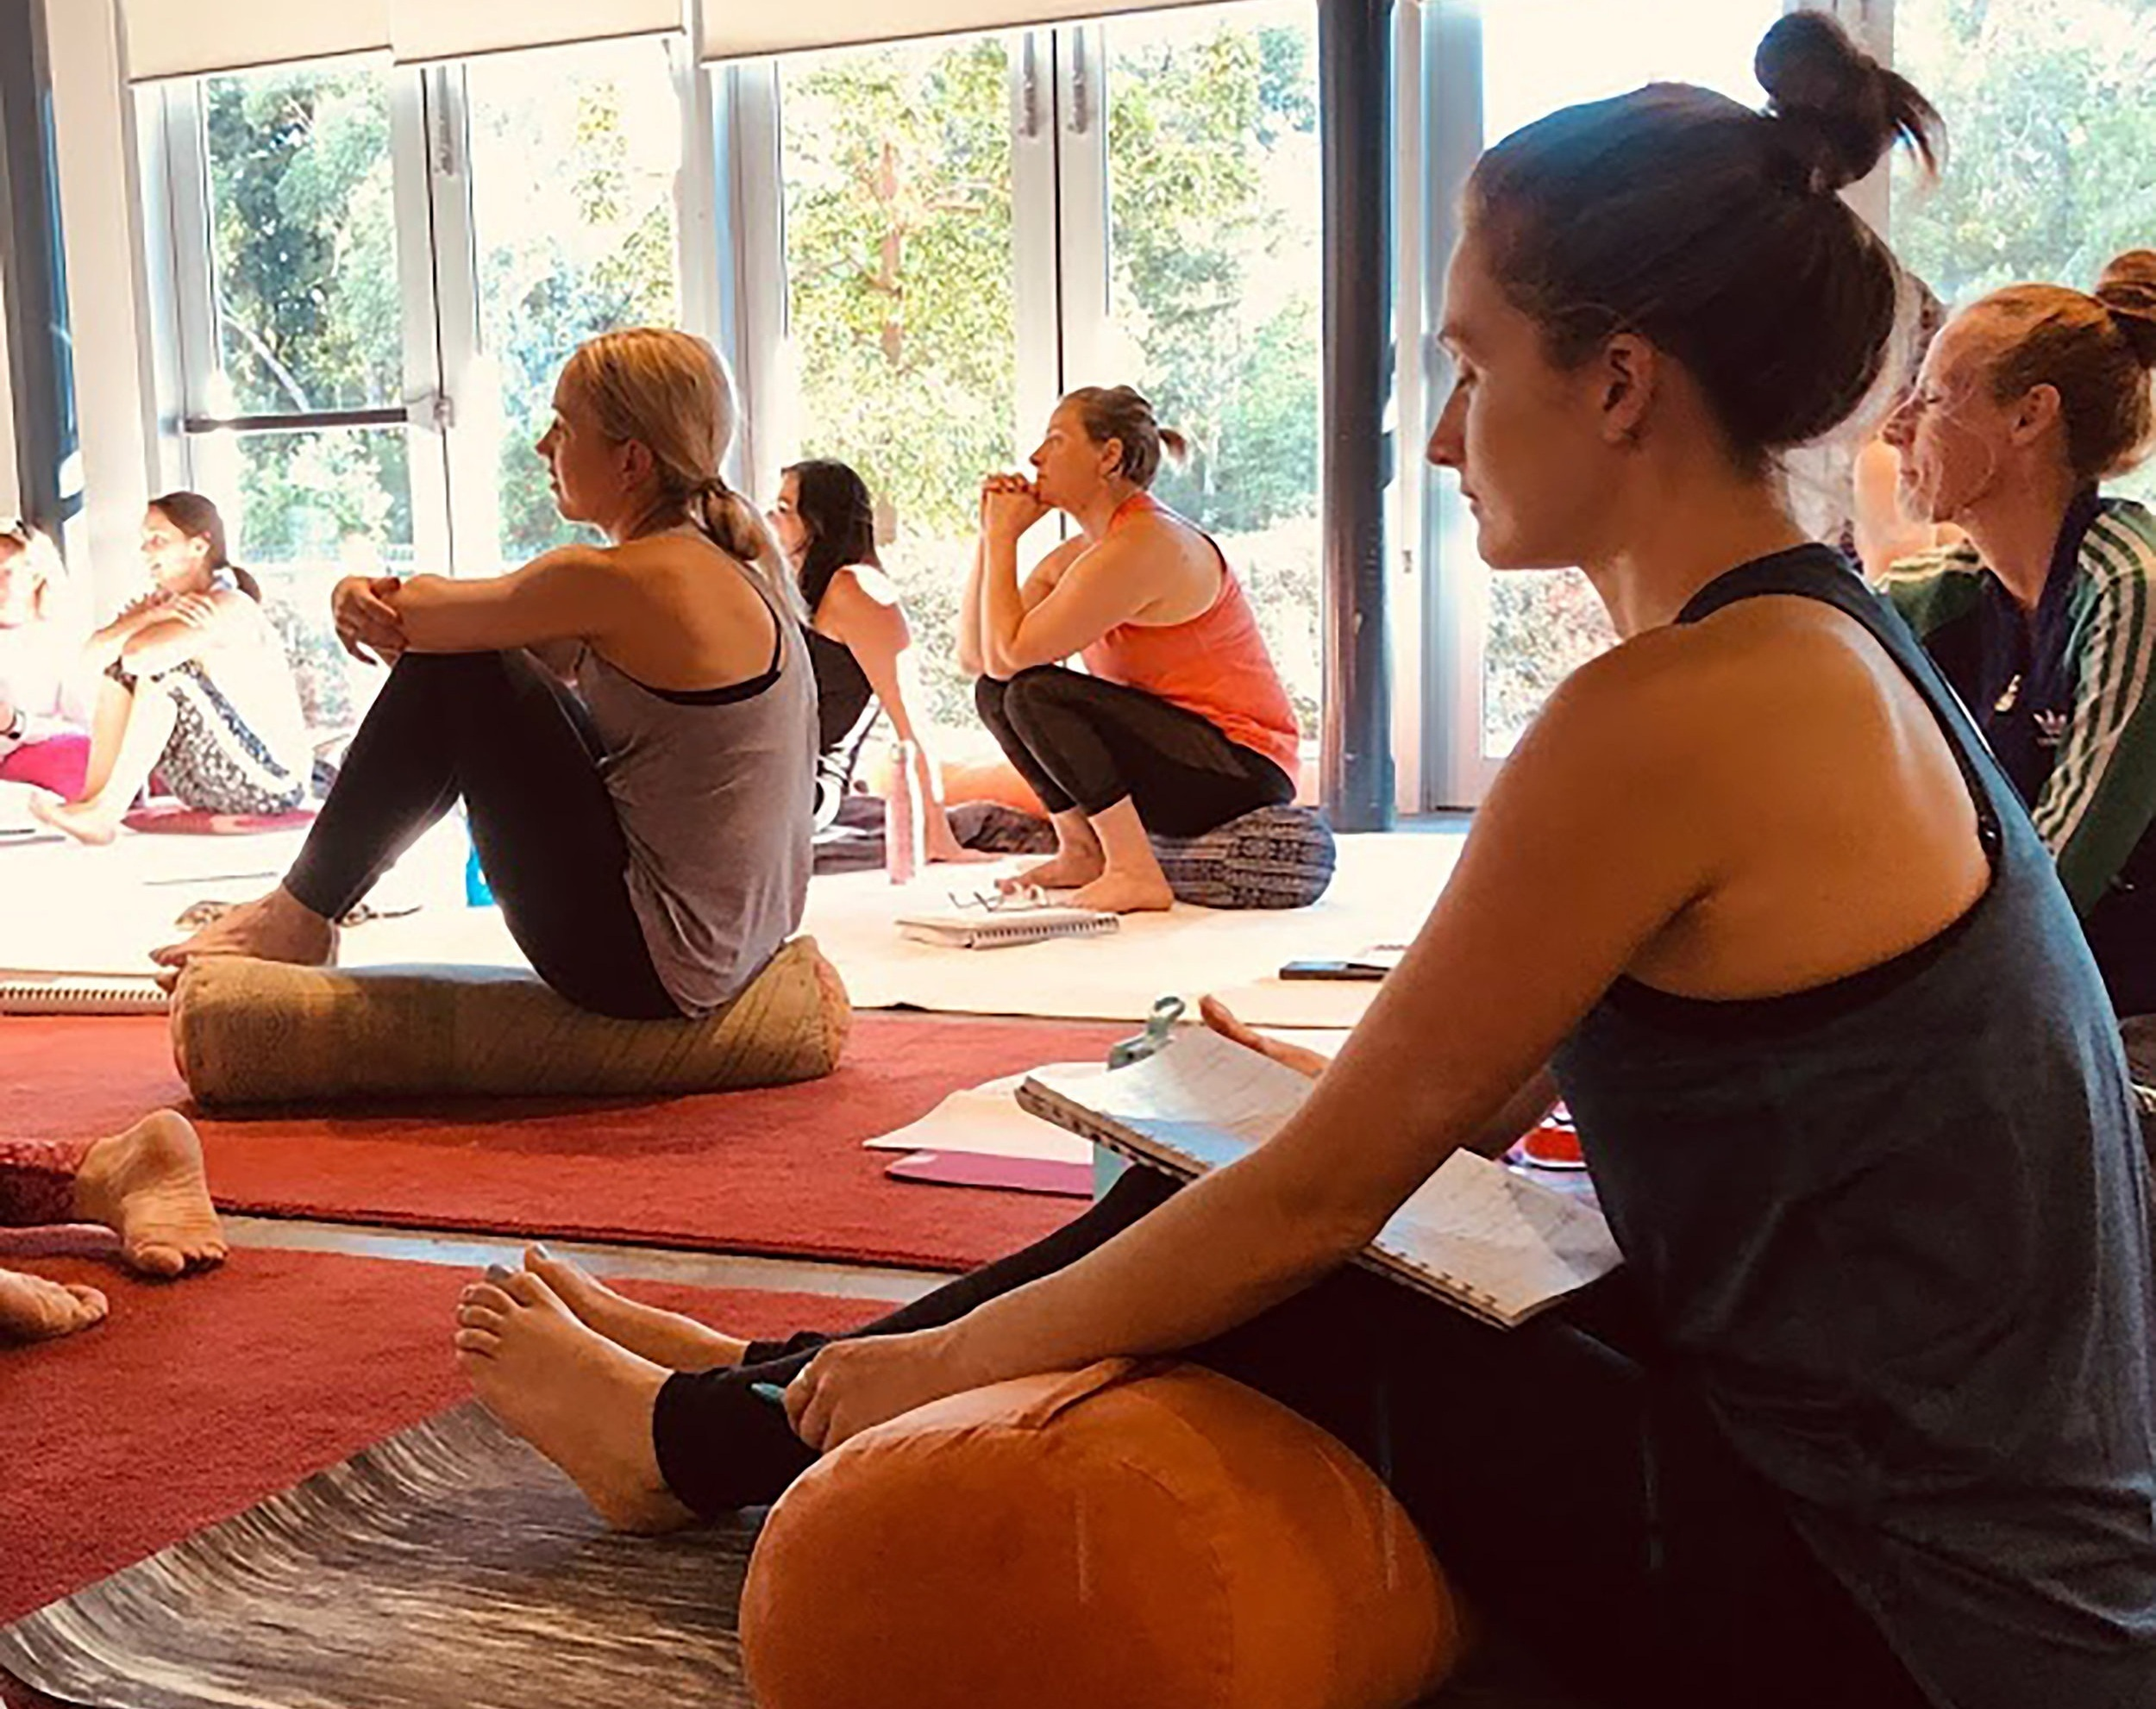 Courses - For those who are seeking to empower others, learn about what Shantarasa Yoga can do for you. We offer a wide range training possibilities.